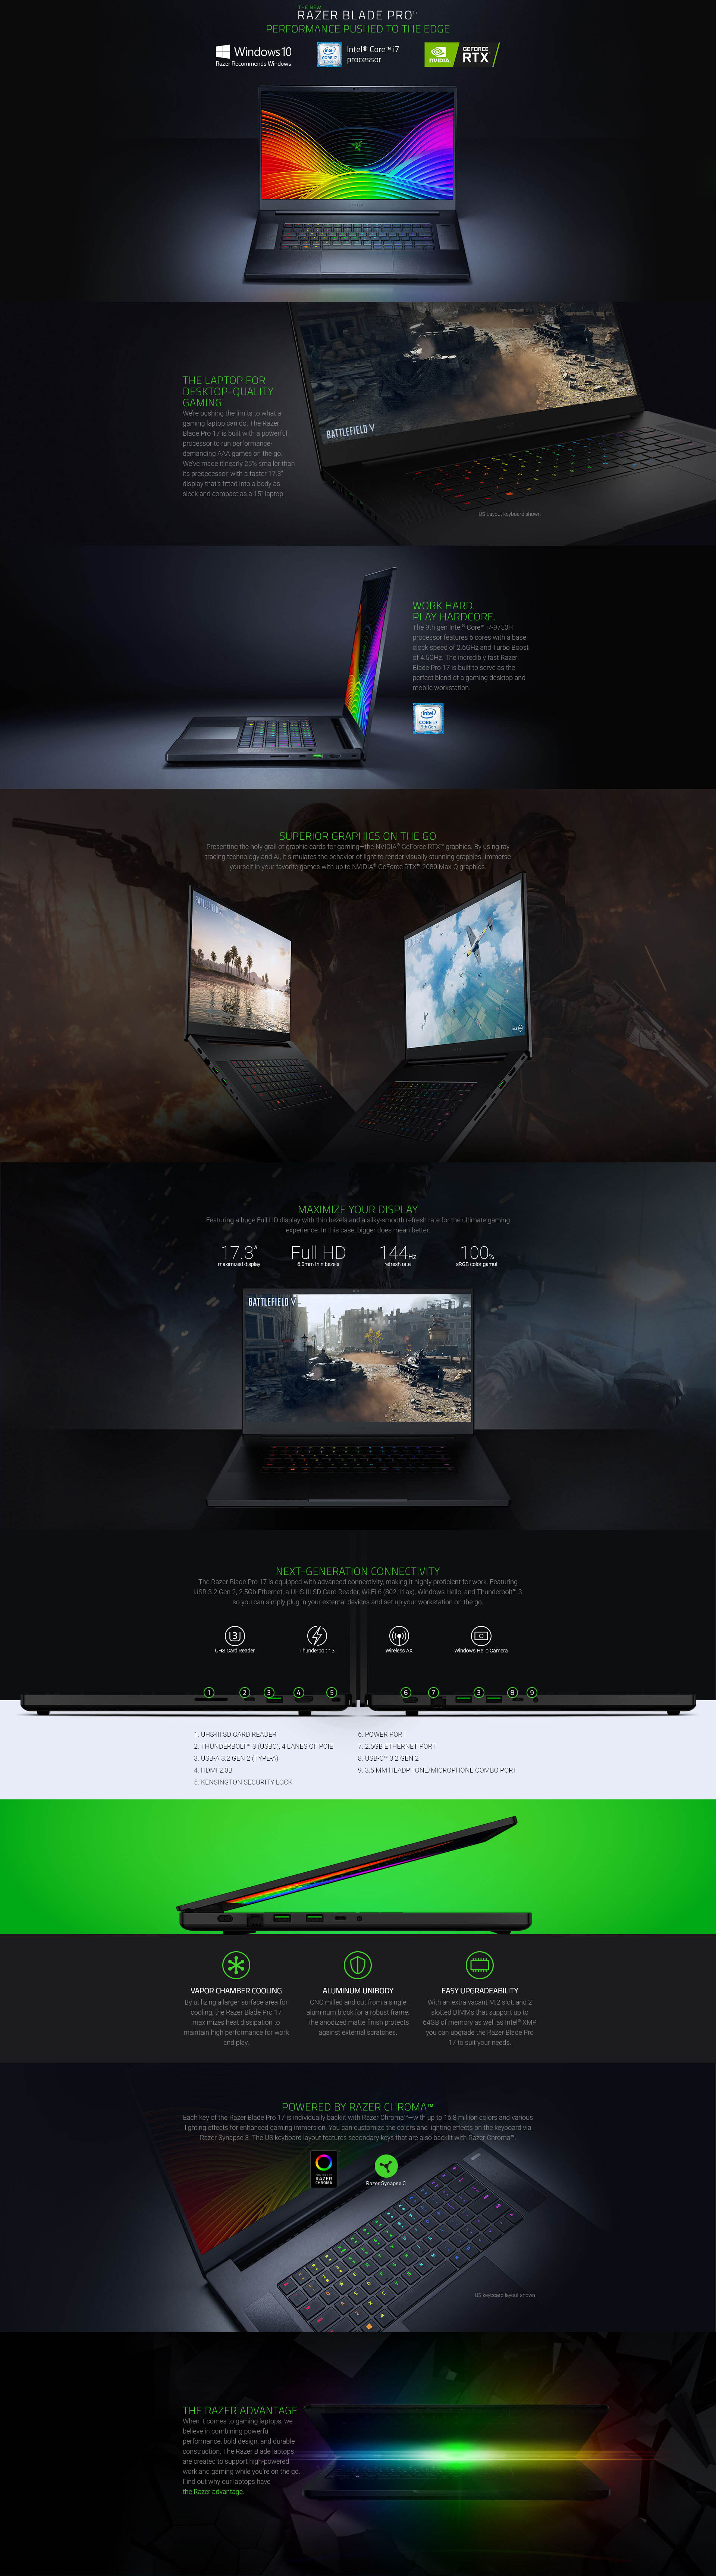 """A large marketing image providing additional information about the product Razer Blade Pro 17 17.3""""  i7 RTX2060 512GB 144Hz Windows 10 Gaming Notebook  - Additional alt info not provided"""